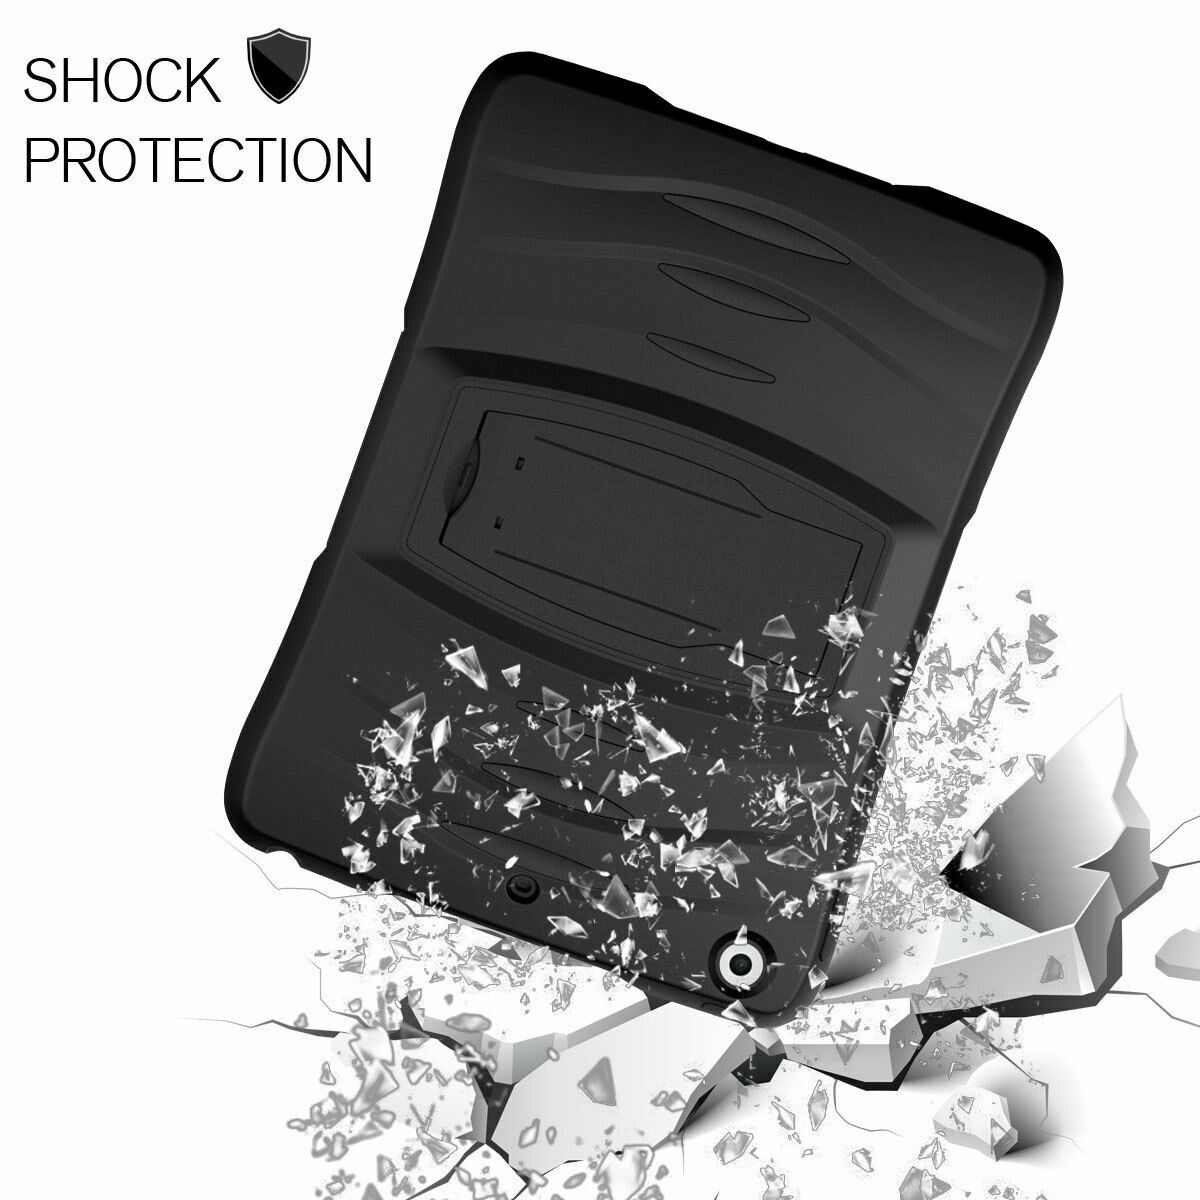 For Samsung Galaxy Tab E 9.6″ SM-T560 Shockproof Armor Hybrid Hard Case Cover BK Cases, Covers, Keyboard Folios